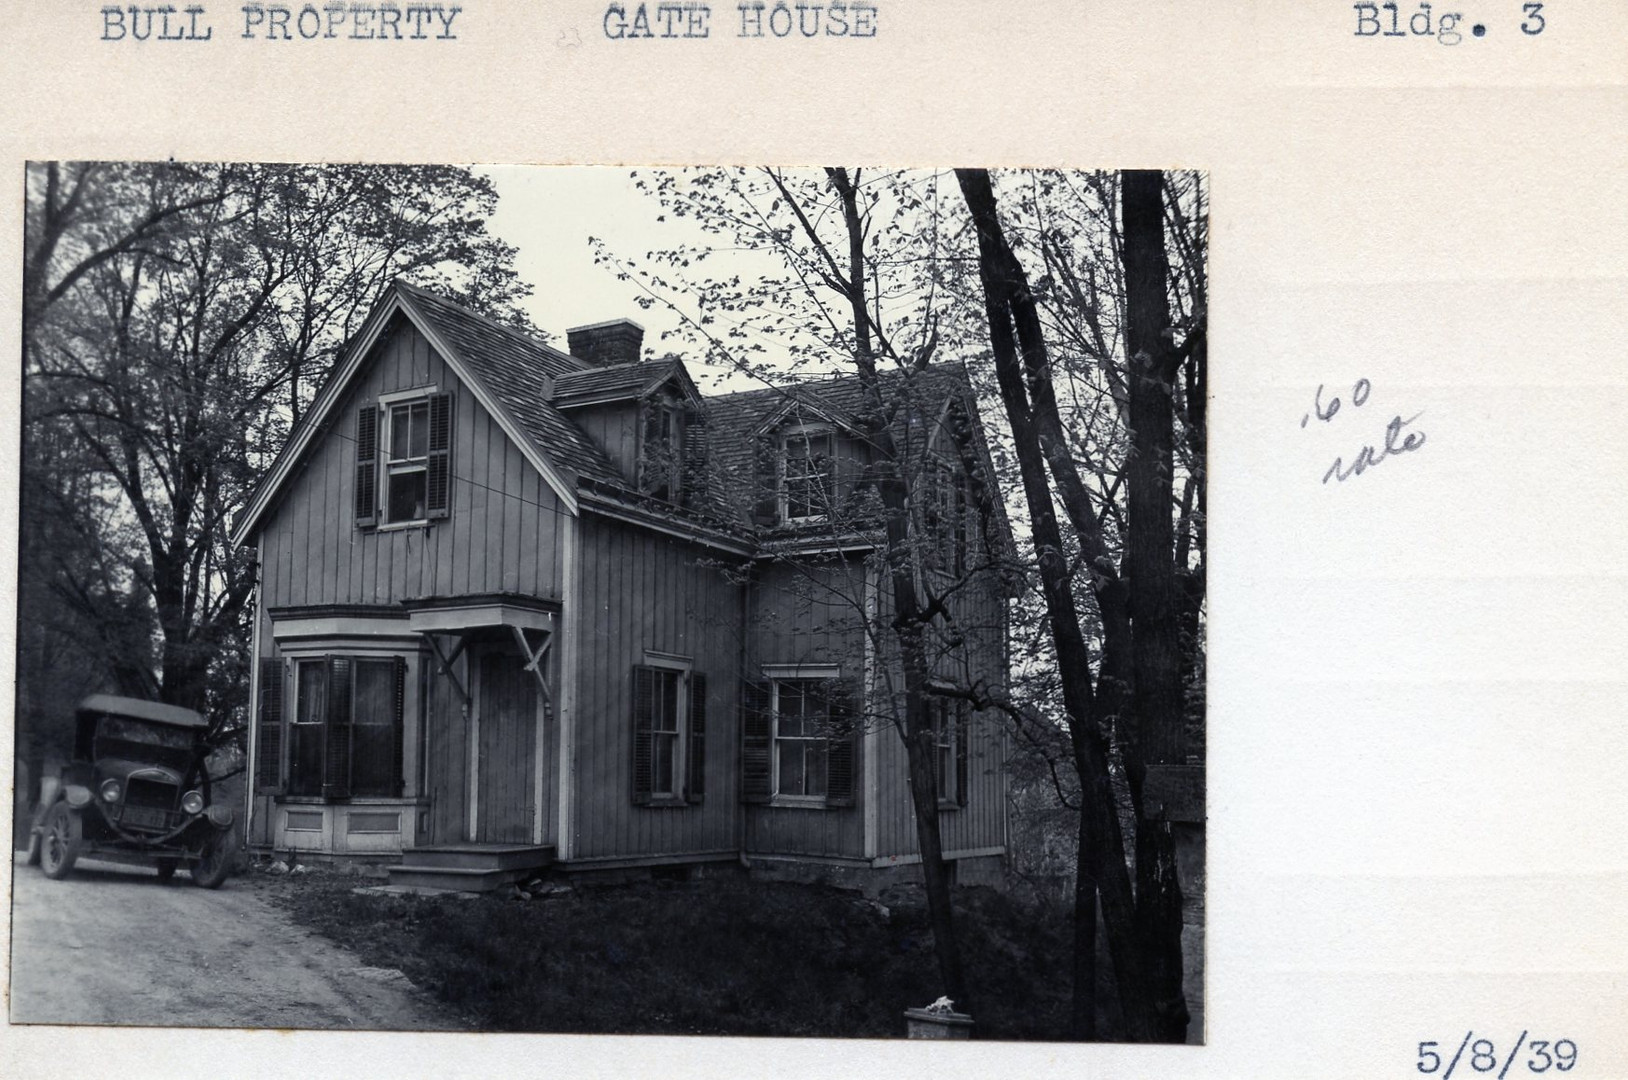 Bull Property, Gate House, Building #3, 5/8/39